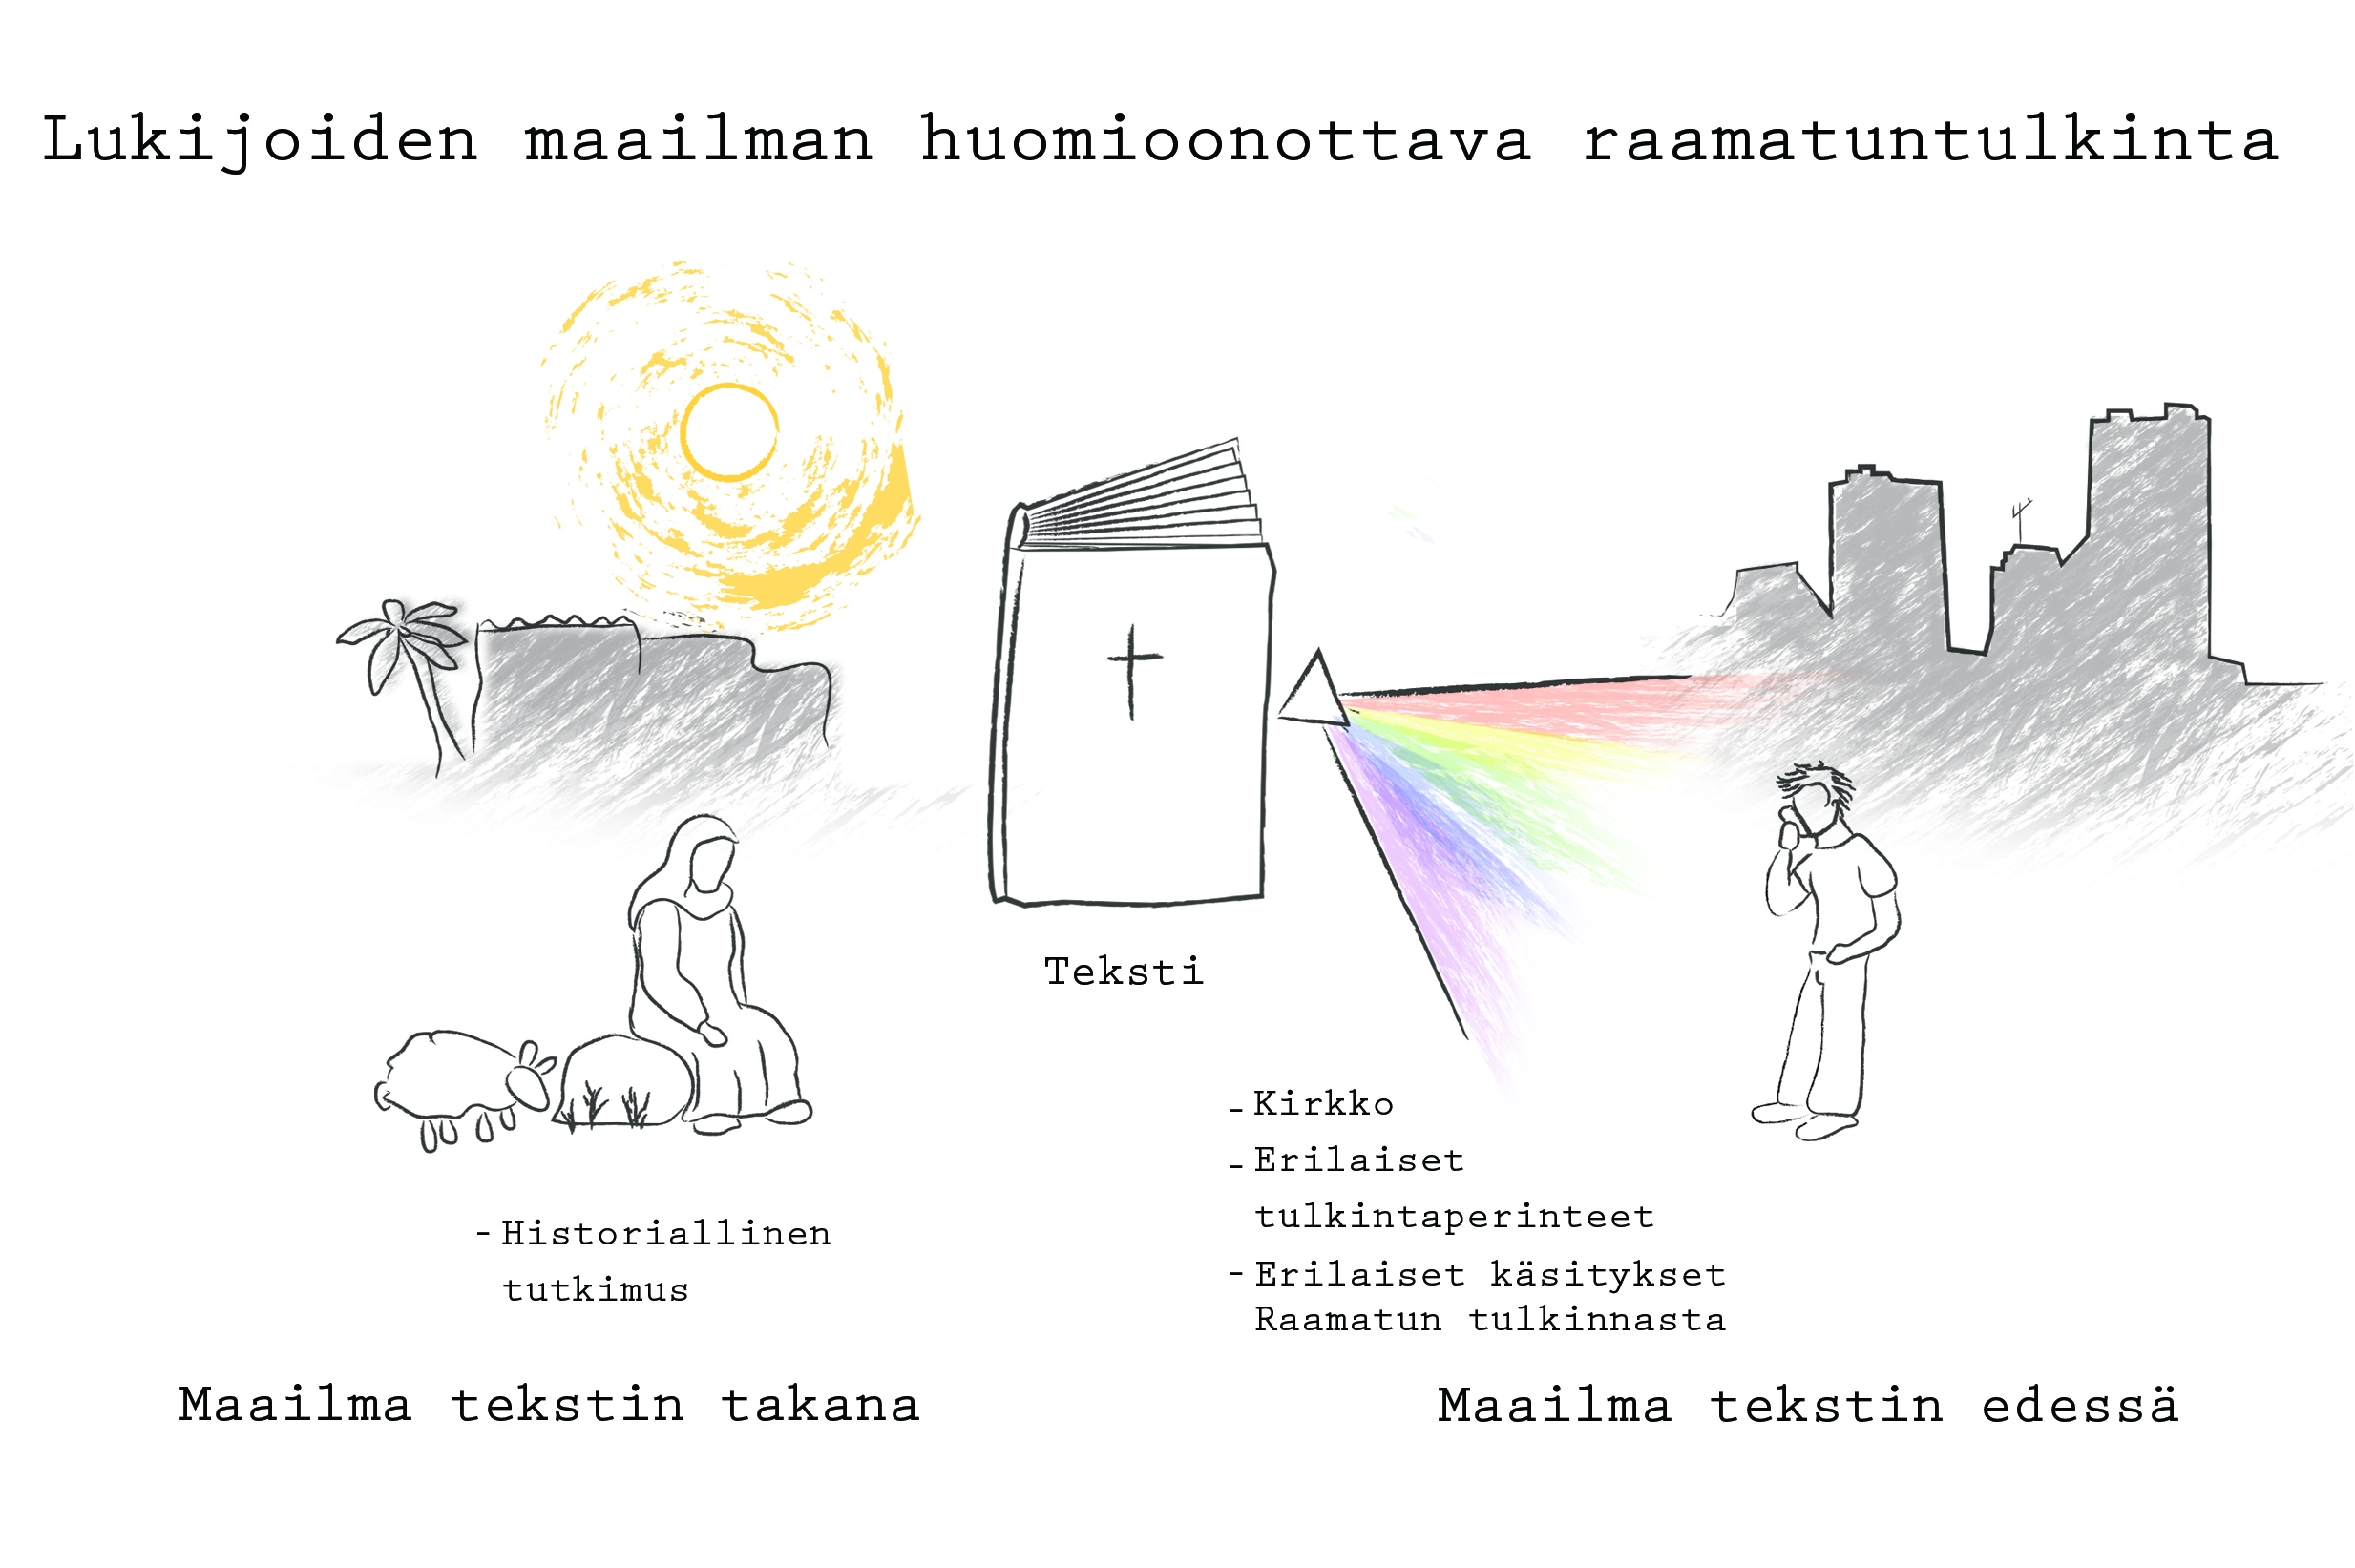 Raamatuntulkinta_Final